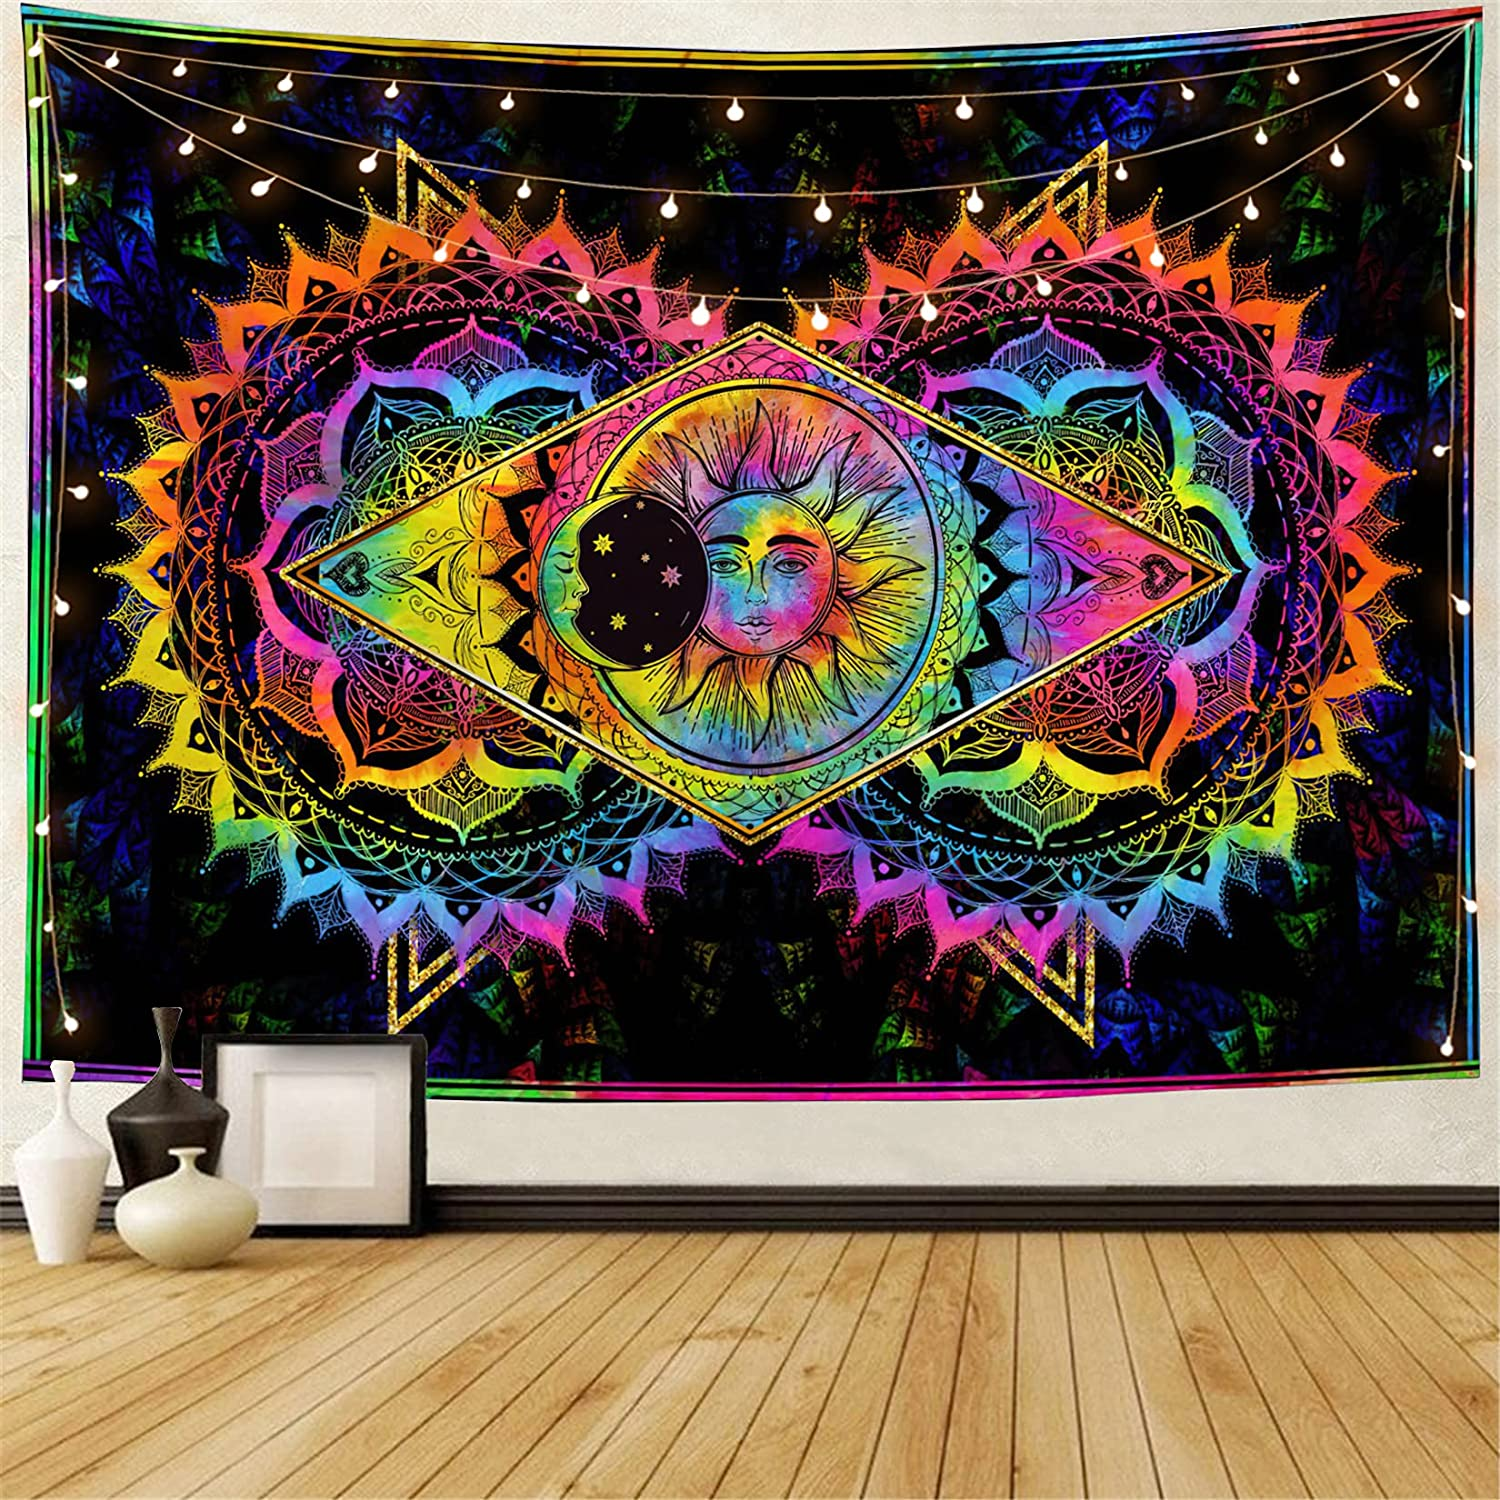 Miytal Sun and Moon Tapestry, Colorful Mandala Hippie Mystic Tapestries, Tie Dye Bohemian Wall Décor for Bedroom- 51.2